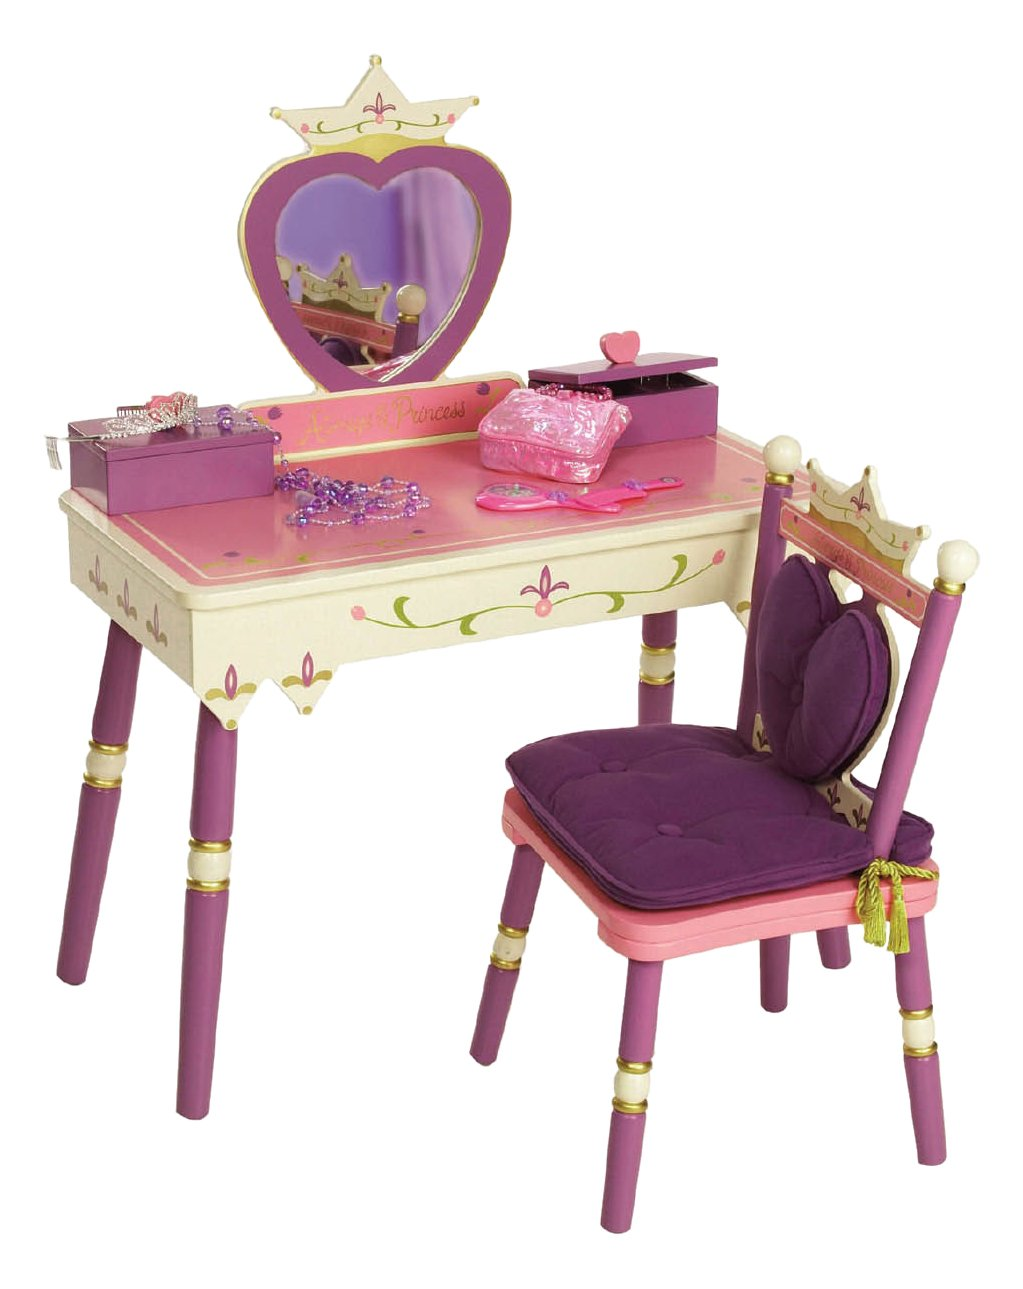 Completely new Amazon.com: Wildkin Princess Vanity Table & Chair Set: Toys & Games NS93